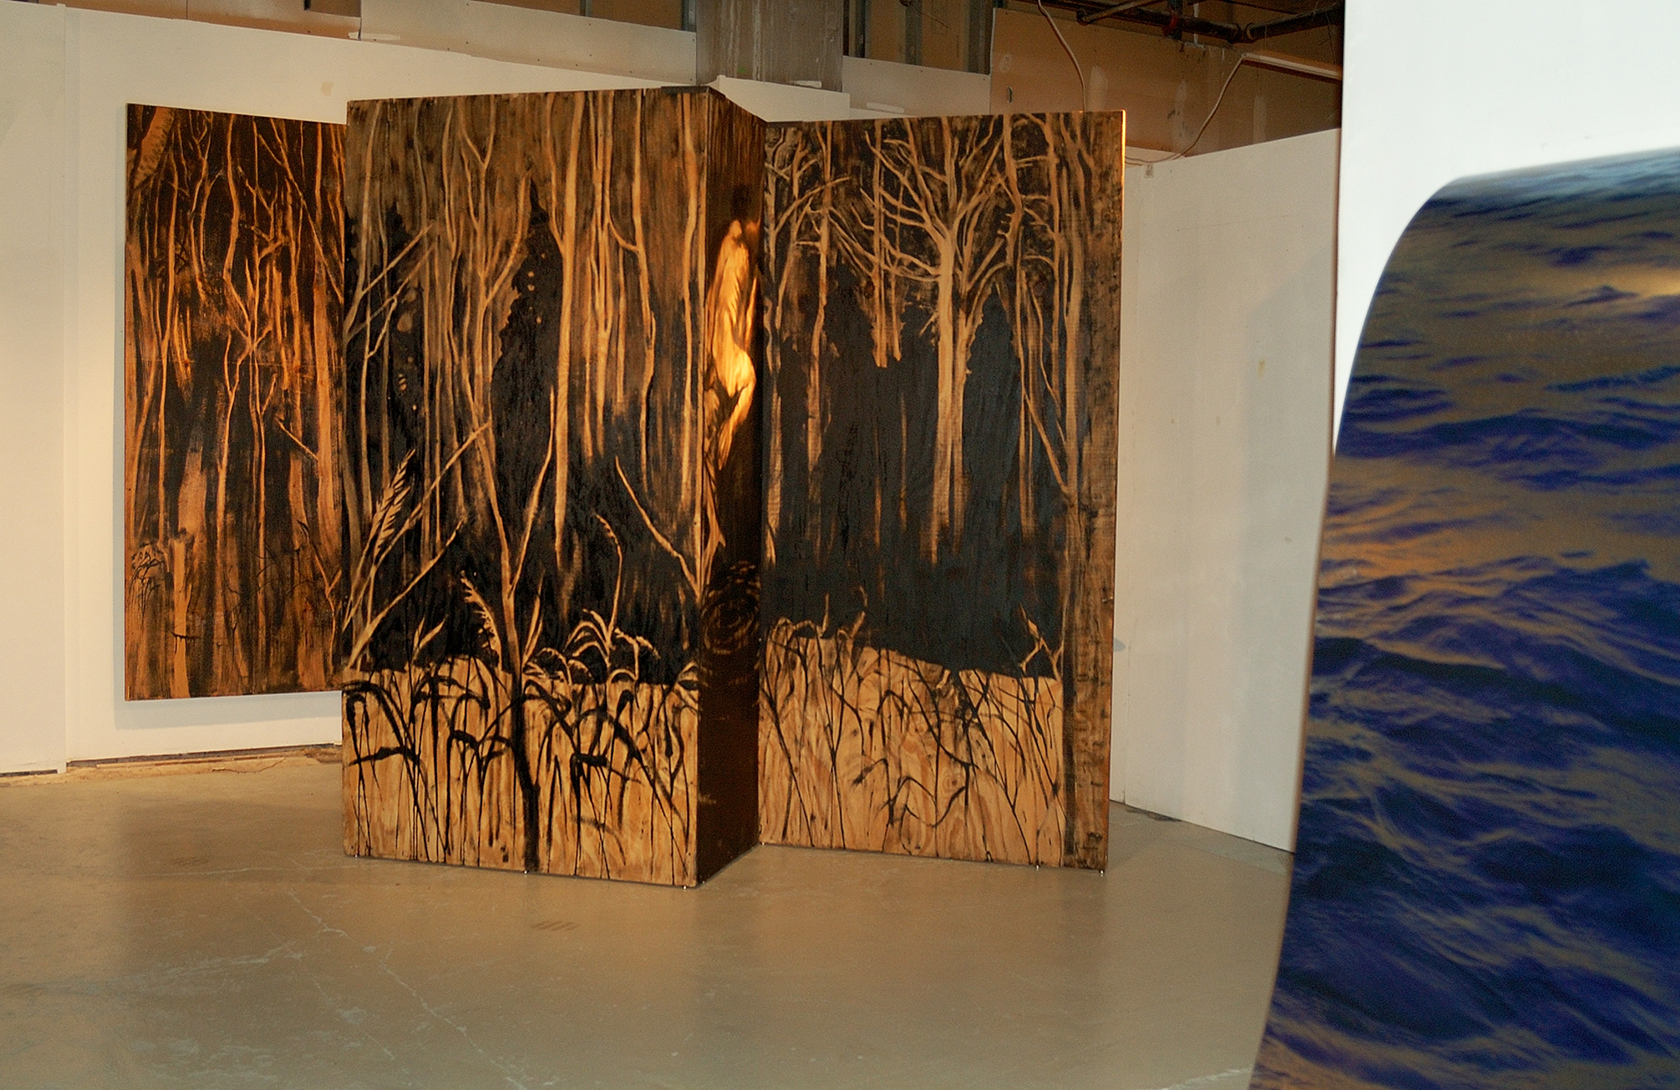 """Living Room"" was a one-person show at Gallery 13, 811 LaSalle St., Minneapolis, MN.  The animals are life-size, Corten steel, the panels, both freestanding  and wall-hung, are each 4' x 8' plywood, painted in asphaltum. Another component of ""Living Room"" was a group of Lake Superior water images printed on steel, glimpsed here."